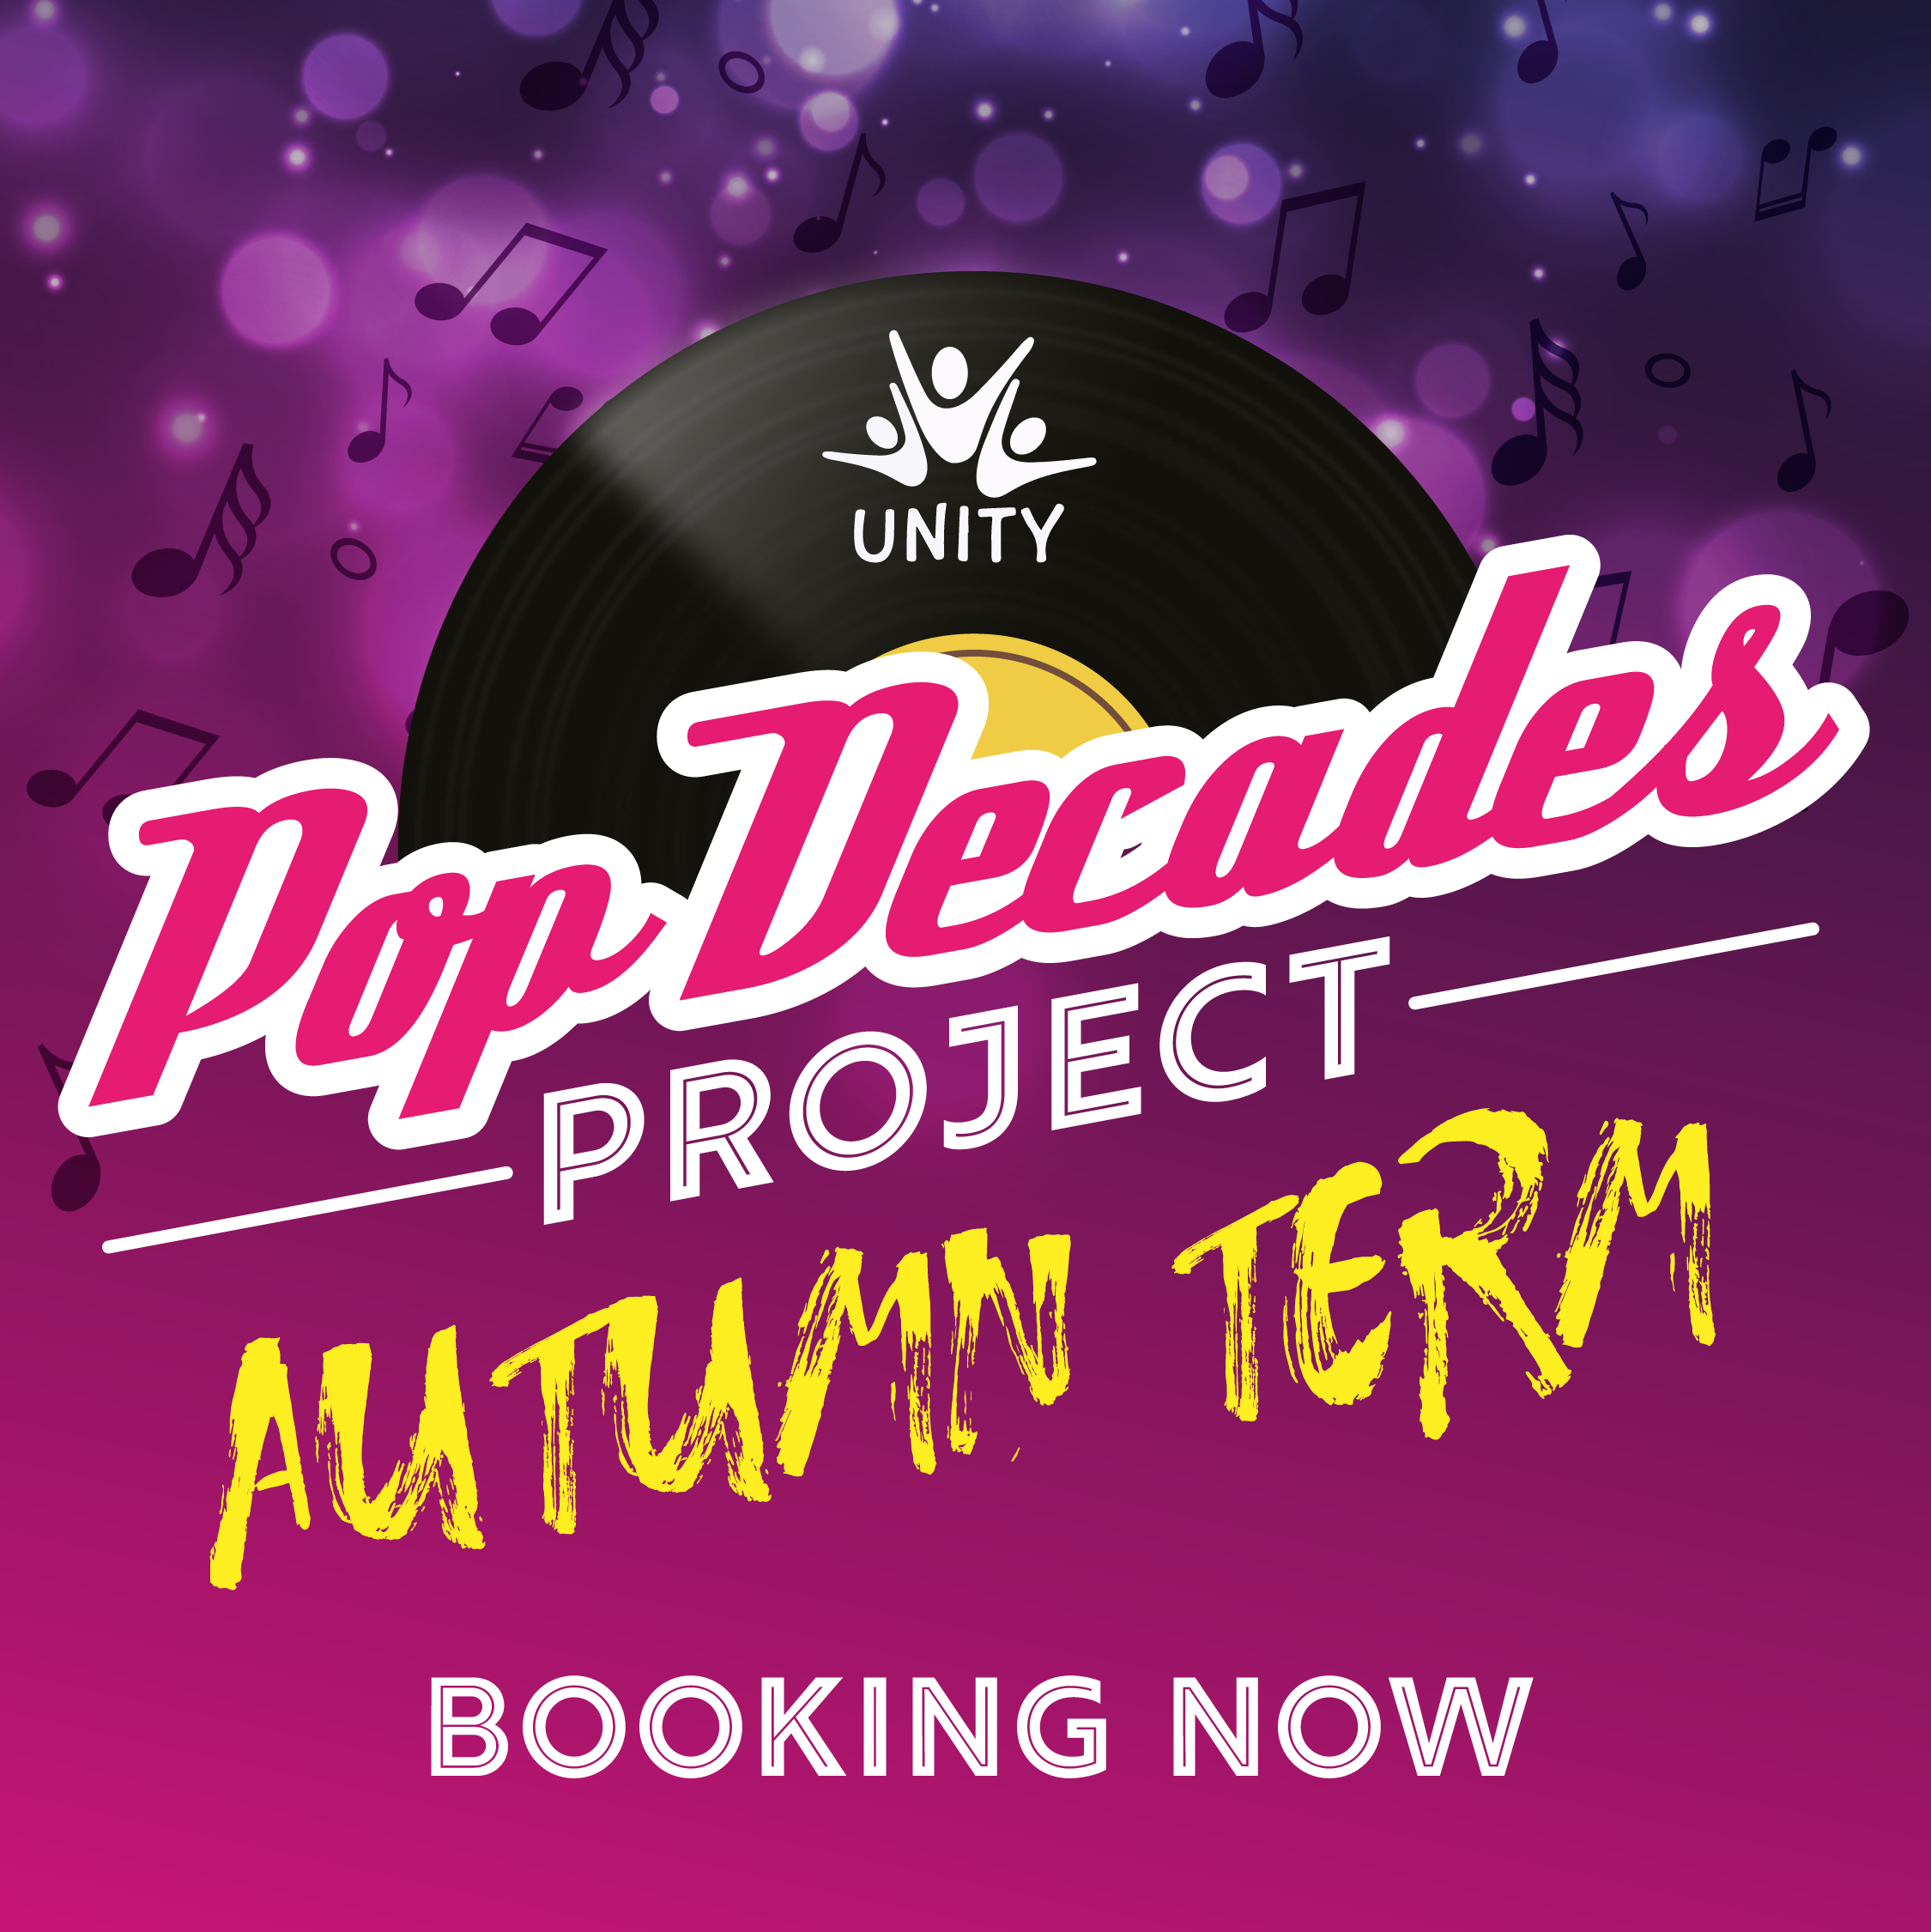 Unity Choir Pop Decades Autumn Term Now Booking